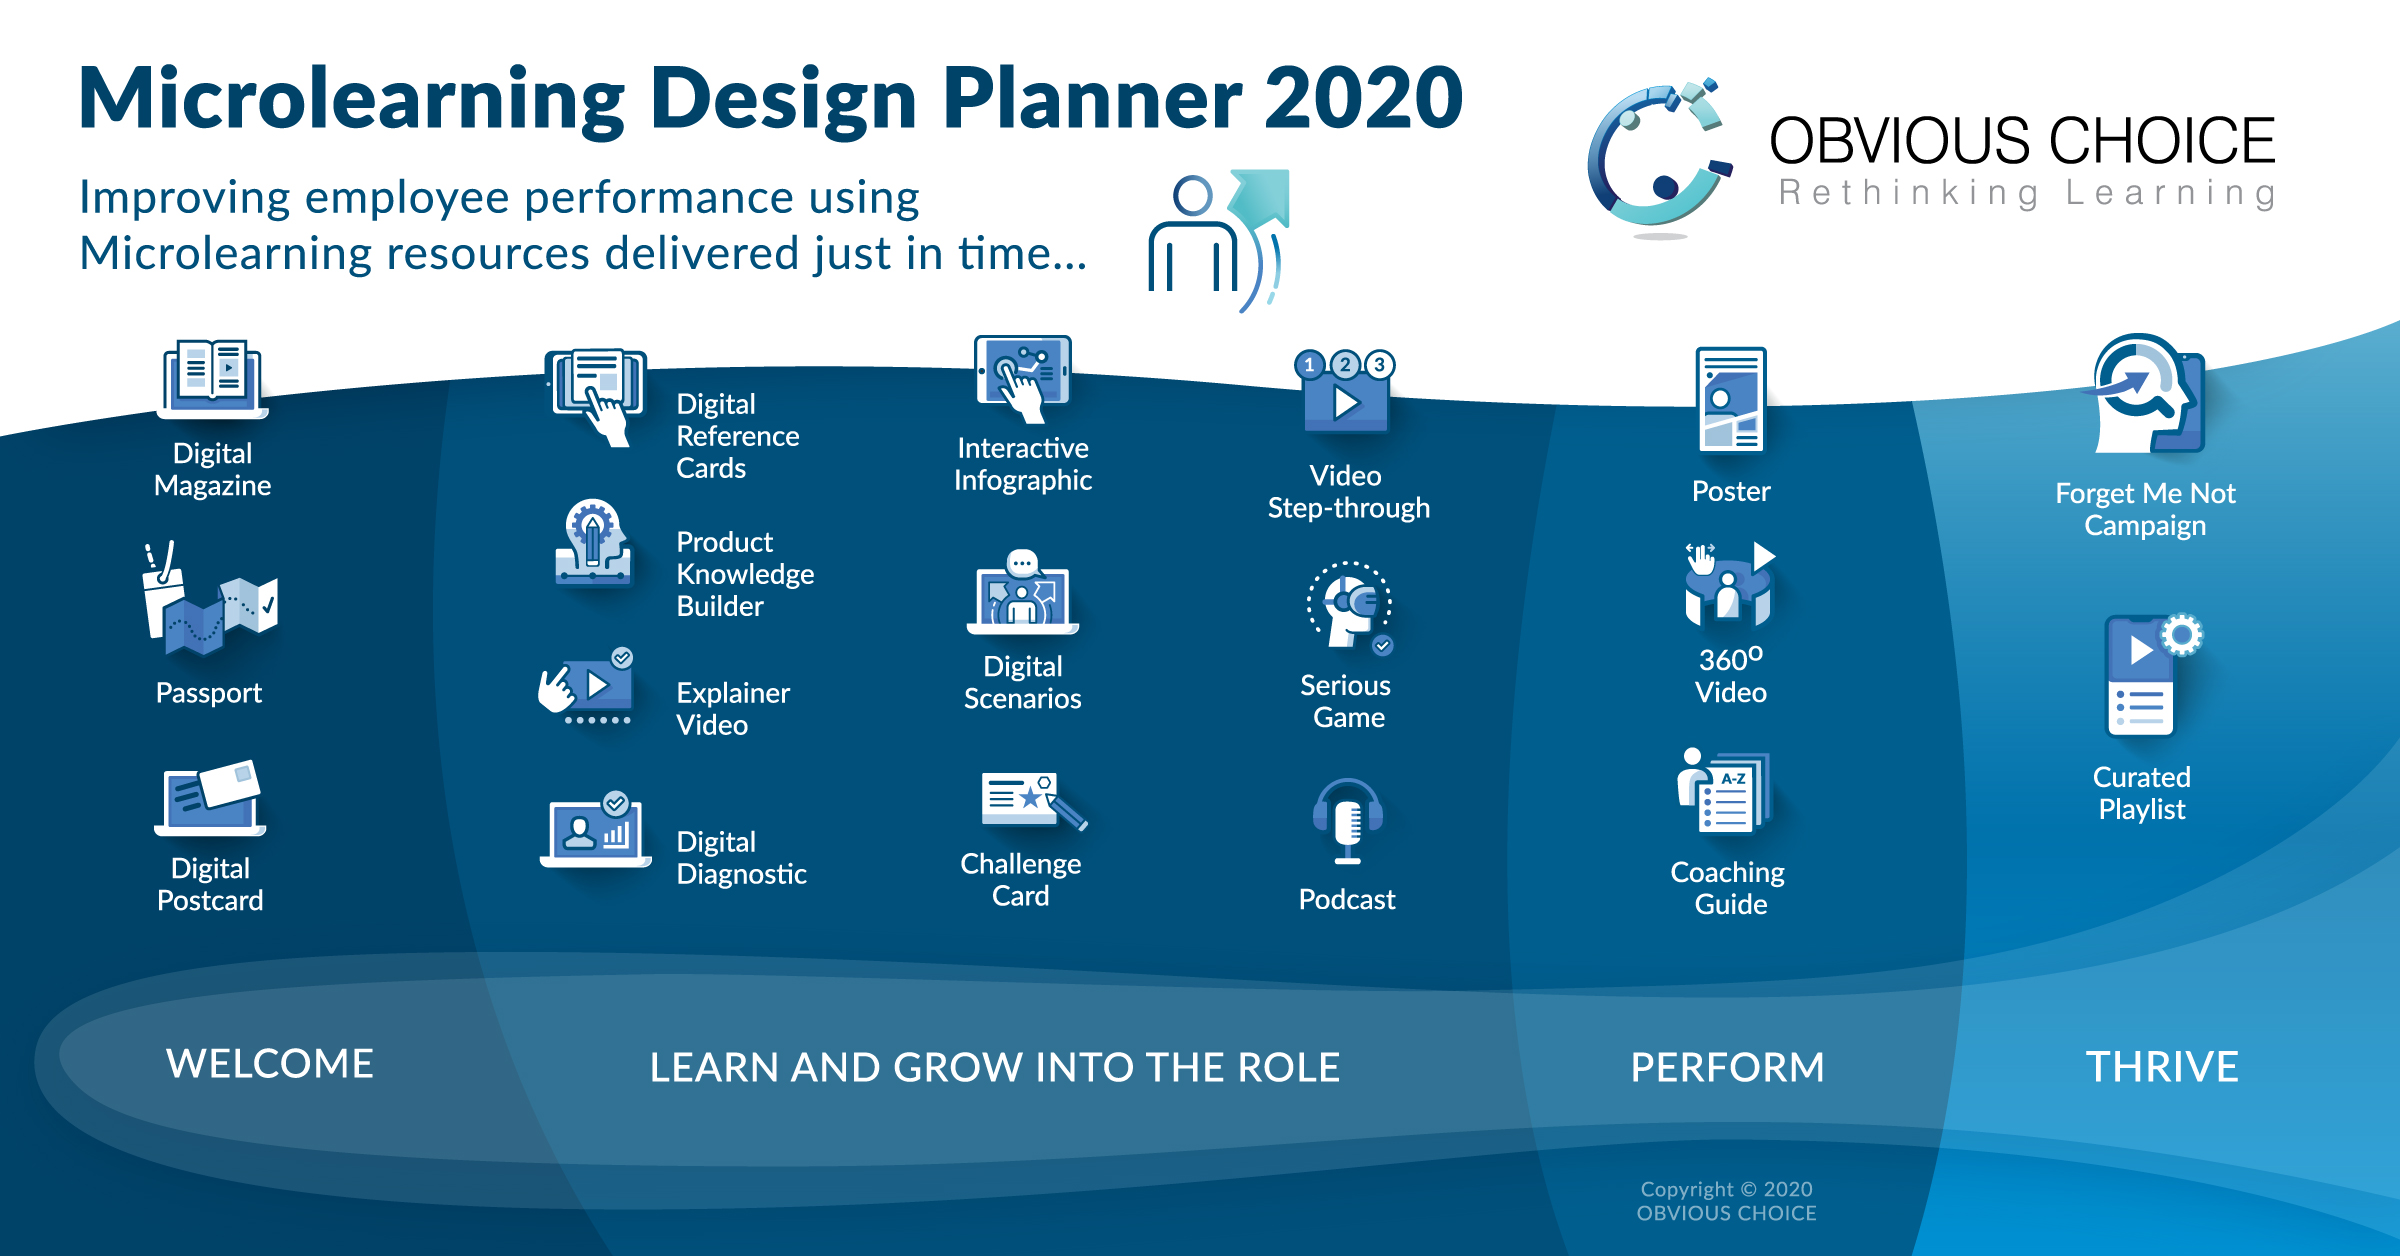 Microlearning Design Planner